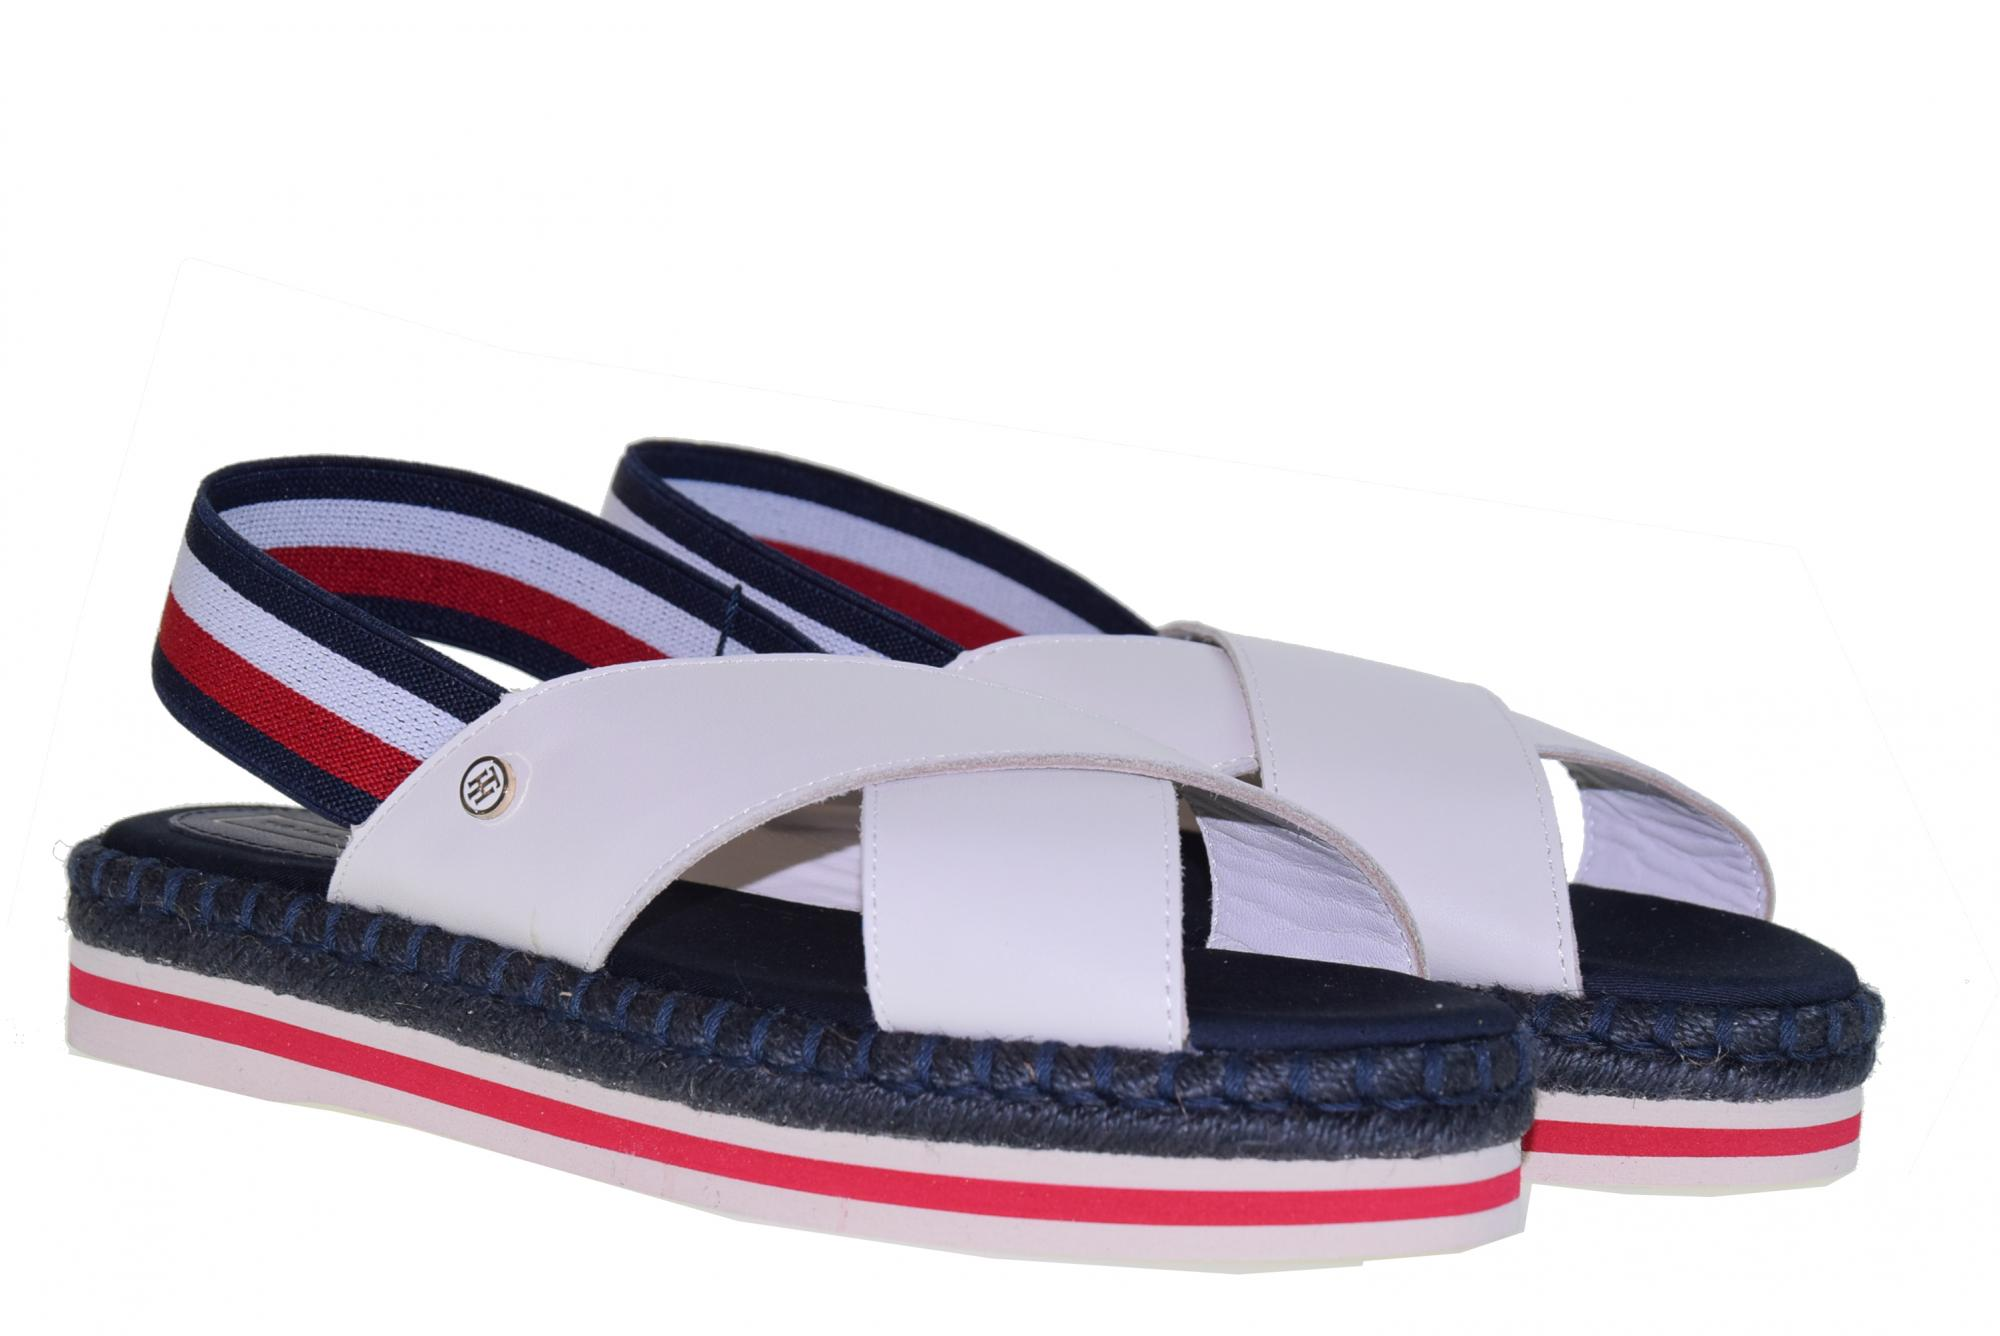 Tommy Hilfiger scarpe donna sandali FW0FW04060 929 COLORFUL ROPE FLAT SANDAL P19